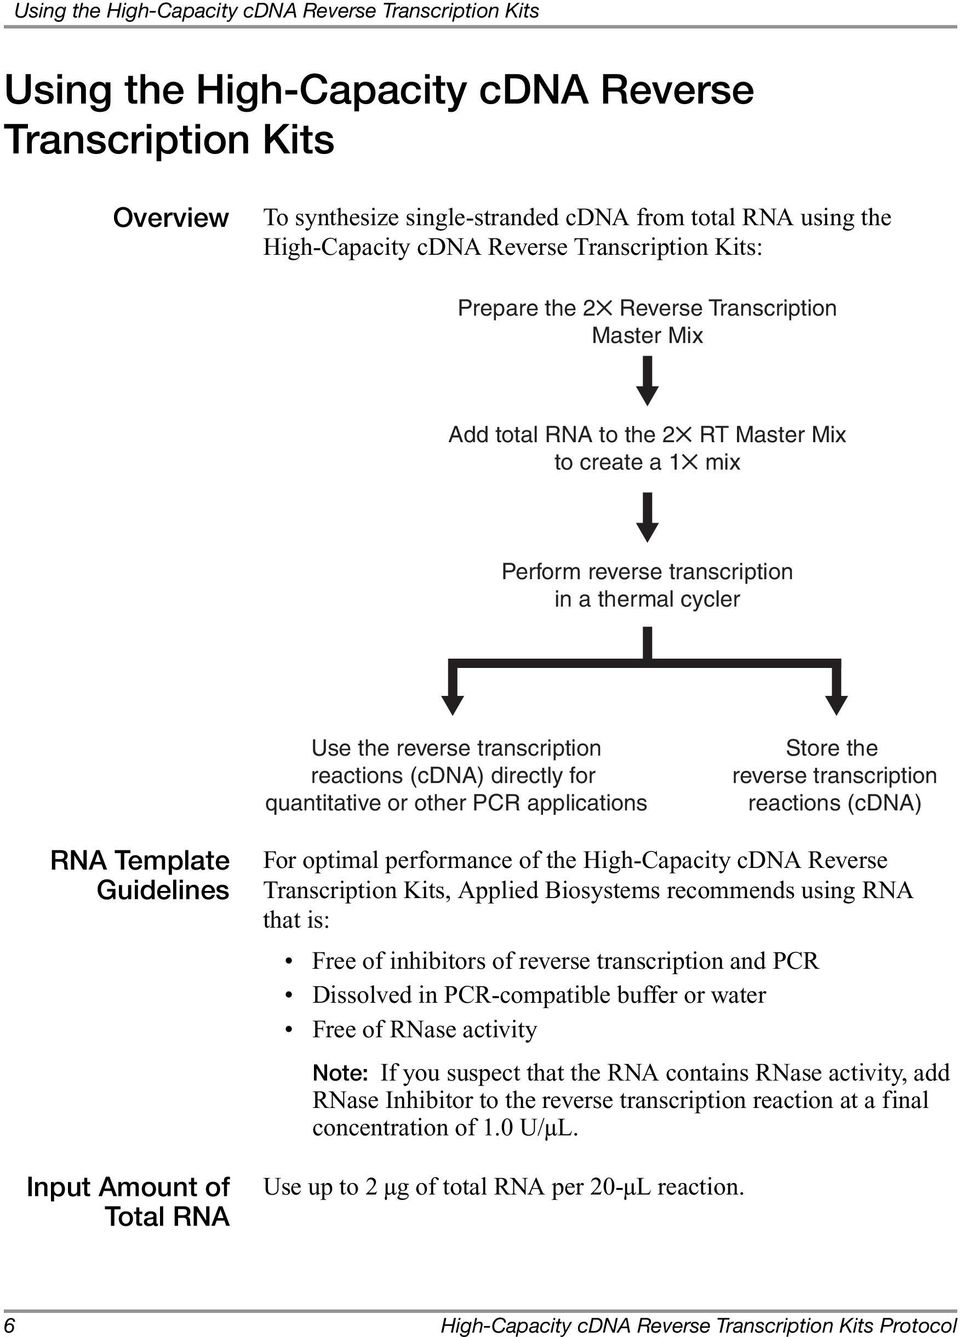 transcription reactions (cdna) directly for quantitative or other PCR applications Store the reverse transcription reactions (cdna) RNA Template Guidelines Input Amount of Total RNA For optimal